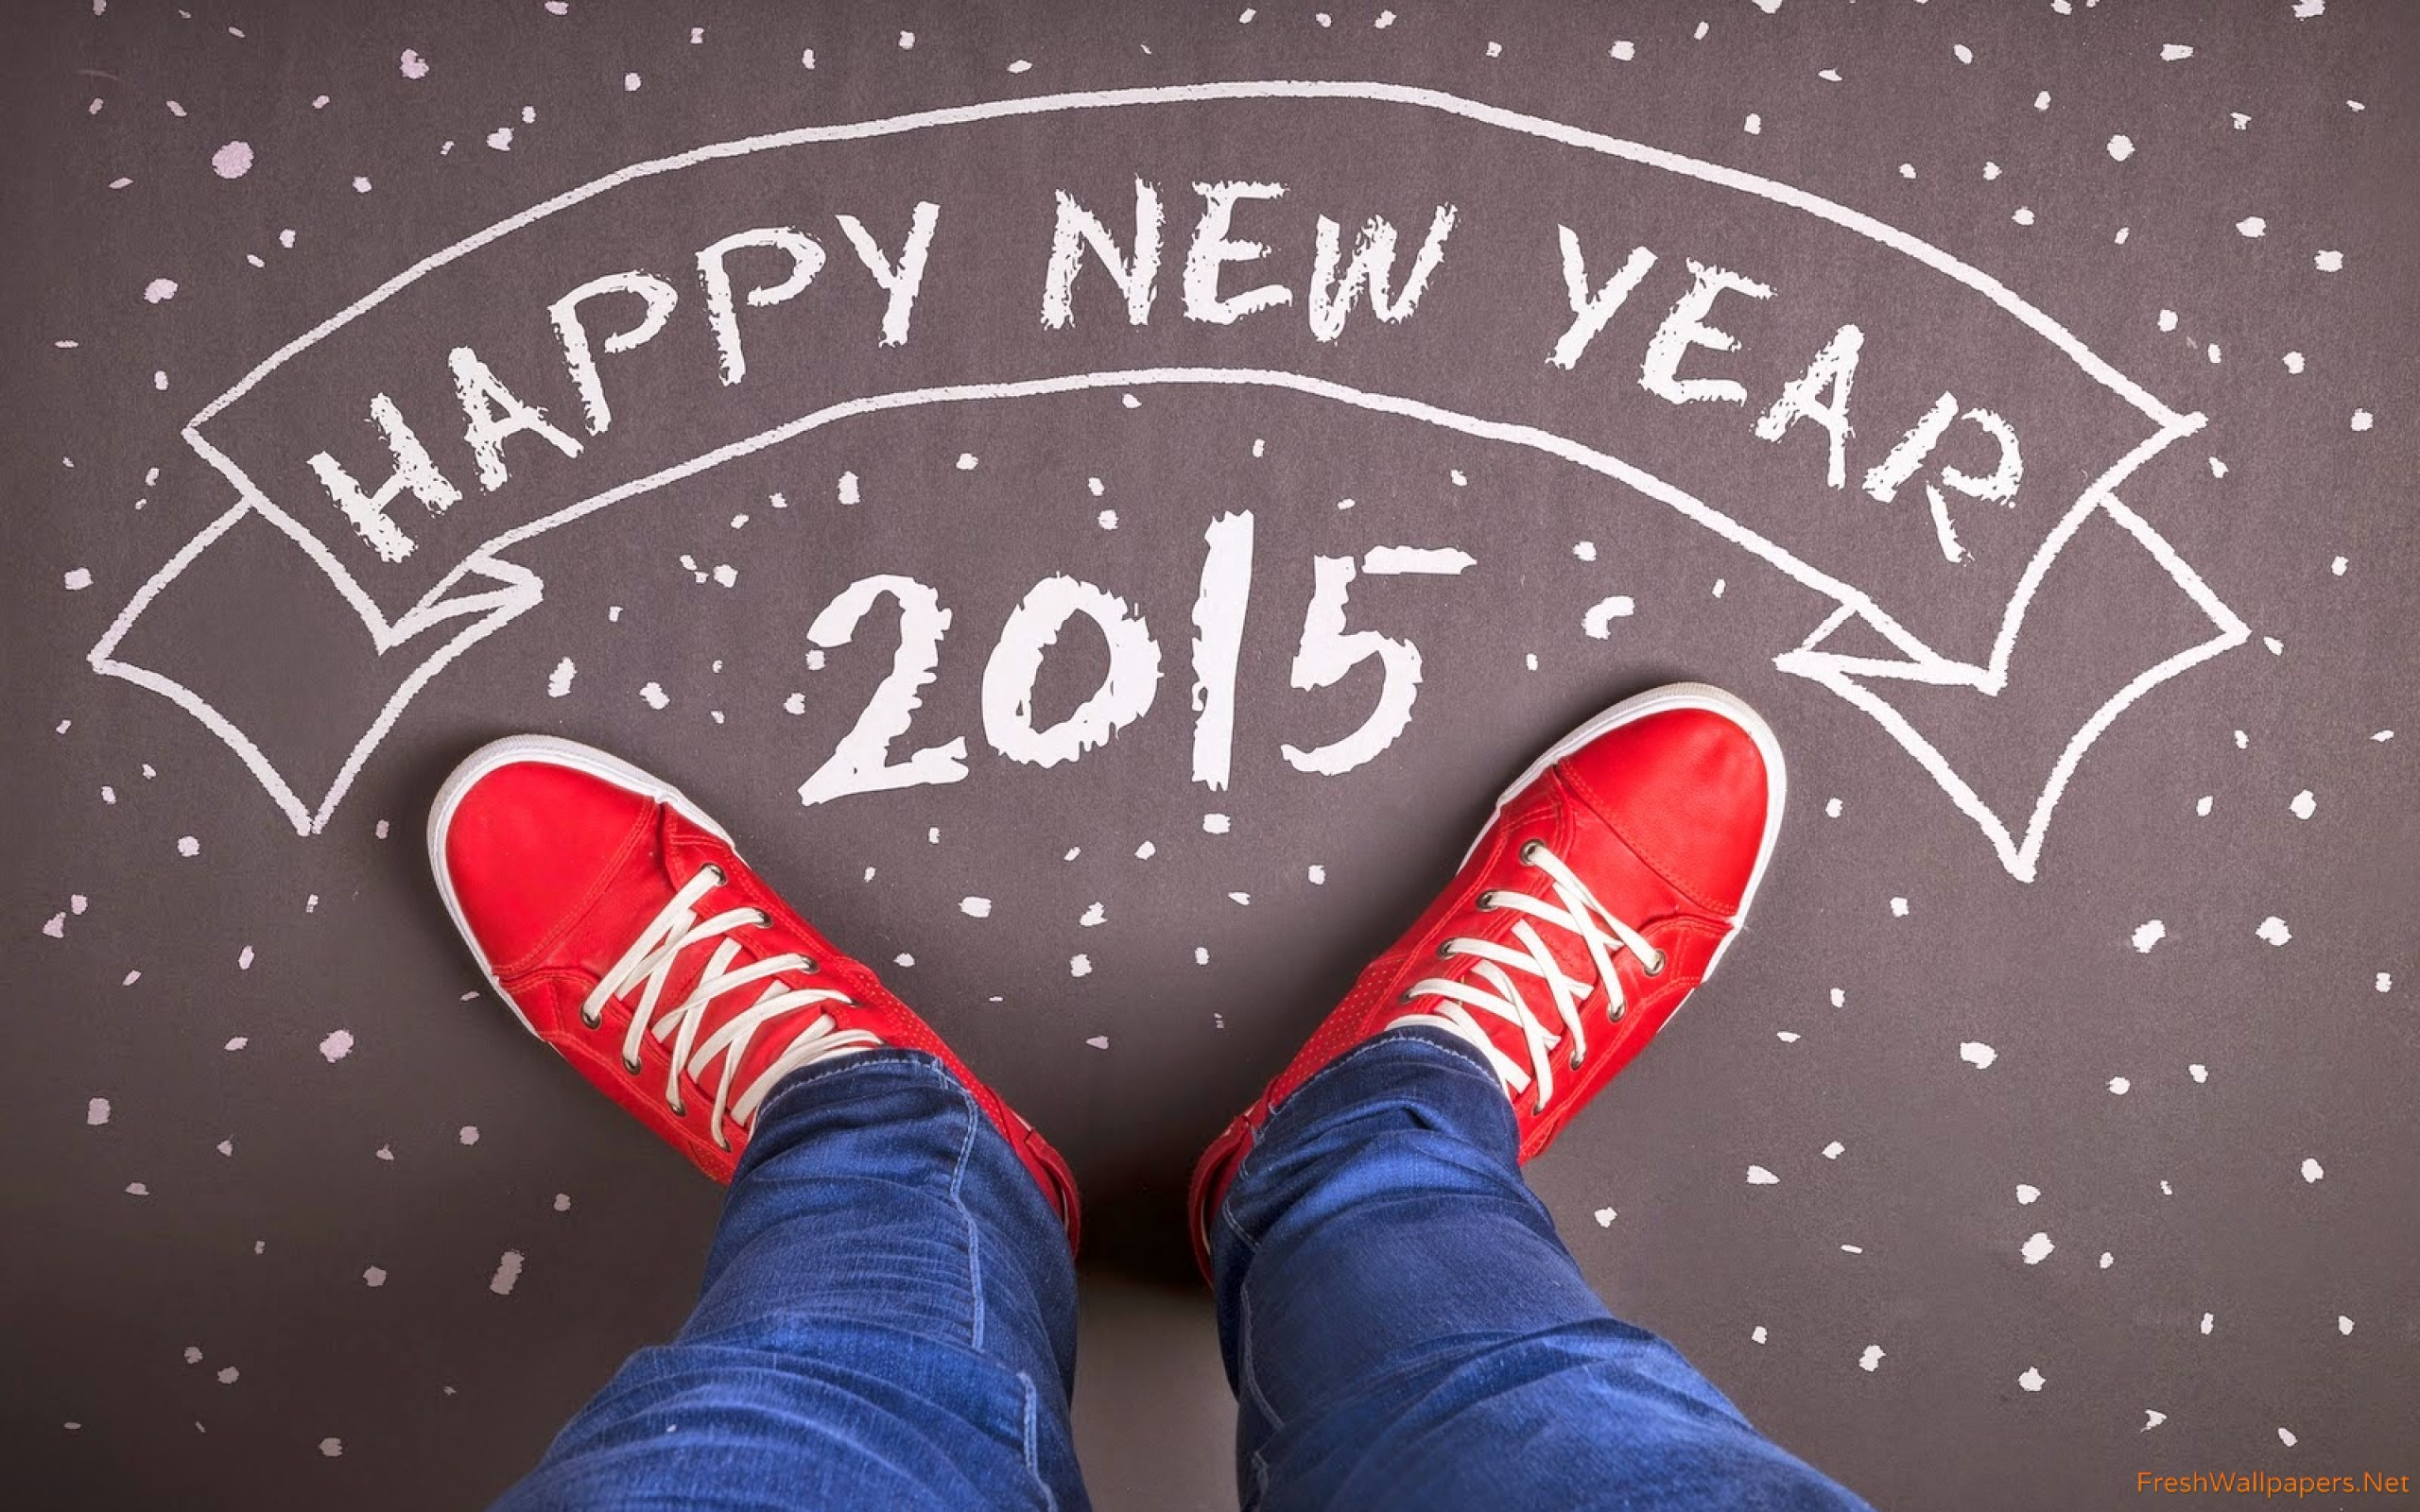 Happy New Year 2015 wallpapers Freshwallpapers 2560x1600